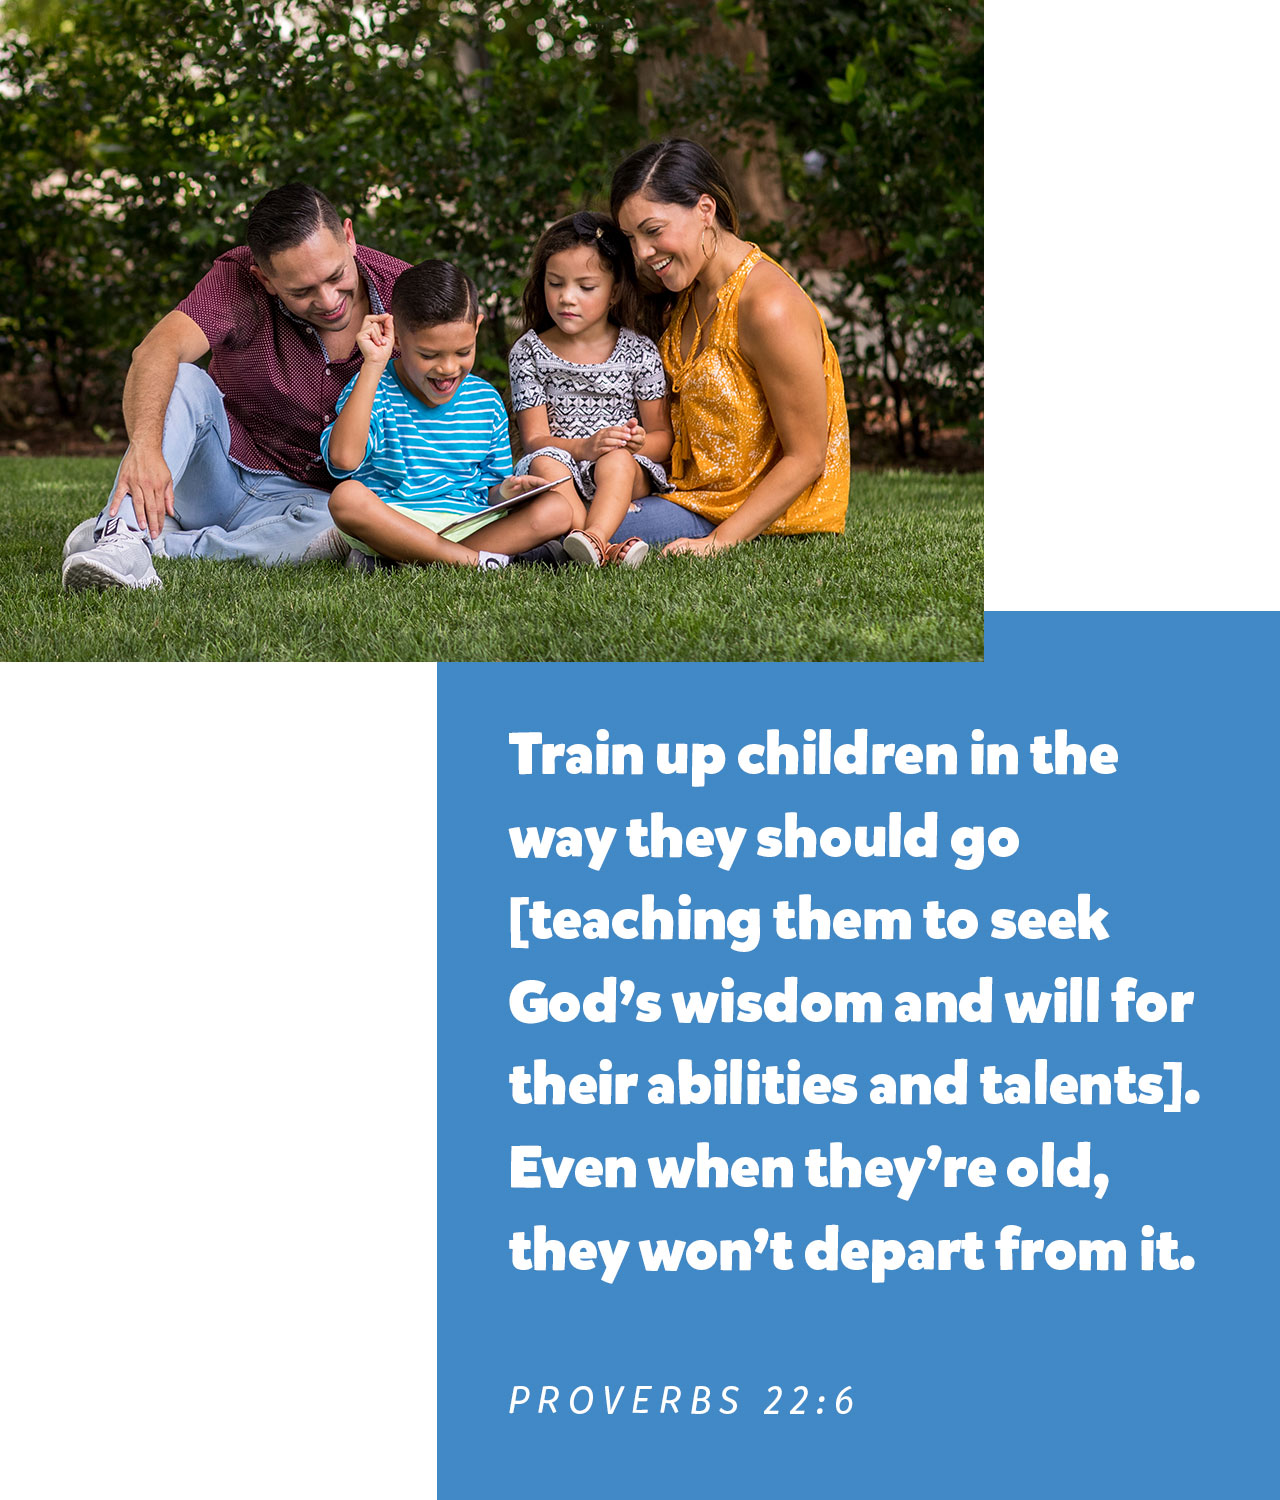 Train up children in the way they should go [teaching them to seek God's wisdom and will for their abilities and talents]. Even when they're old, they won't depart from it. - Proverbs 22:6 - Family sitting on grass playing Bible App for Kids